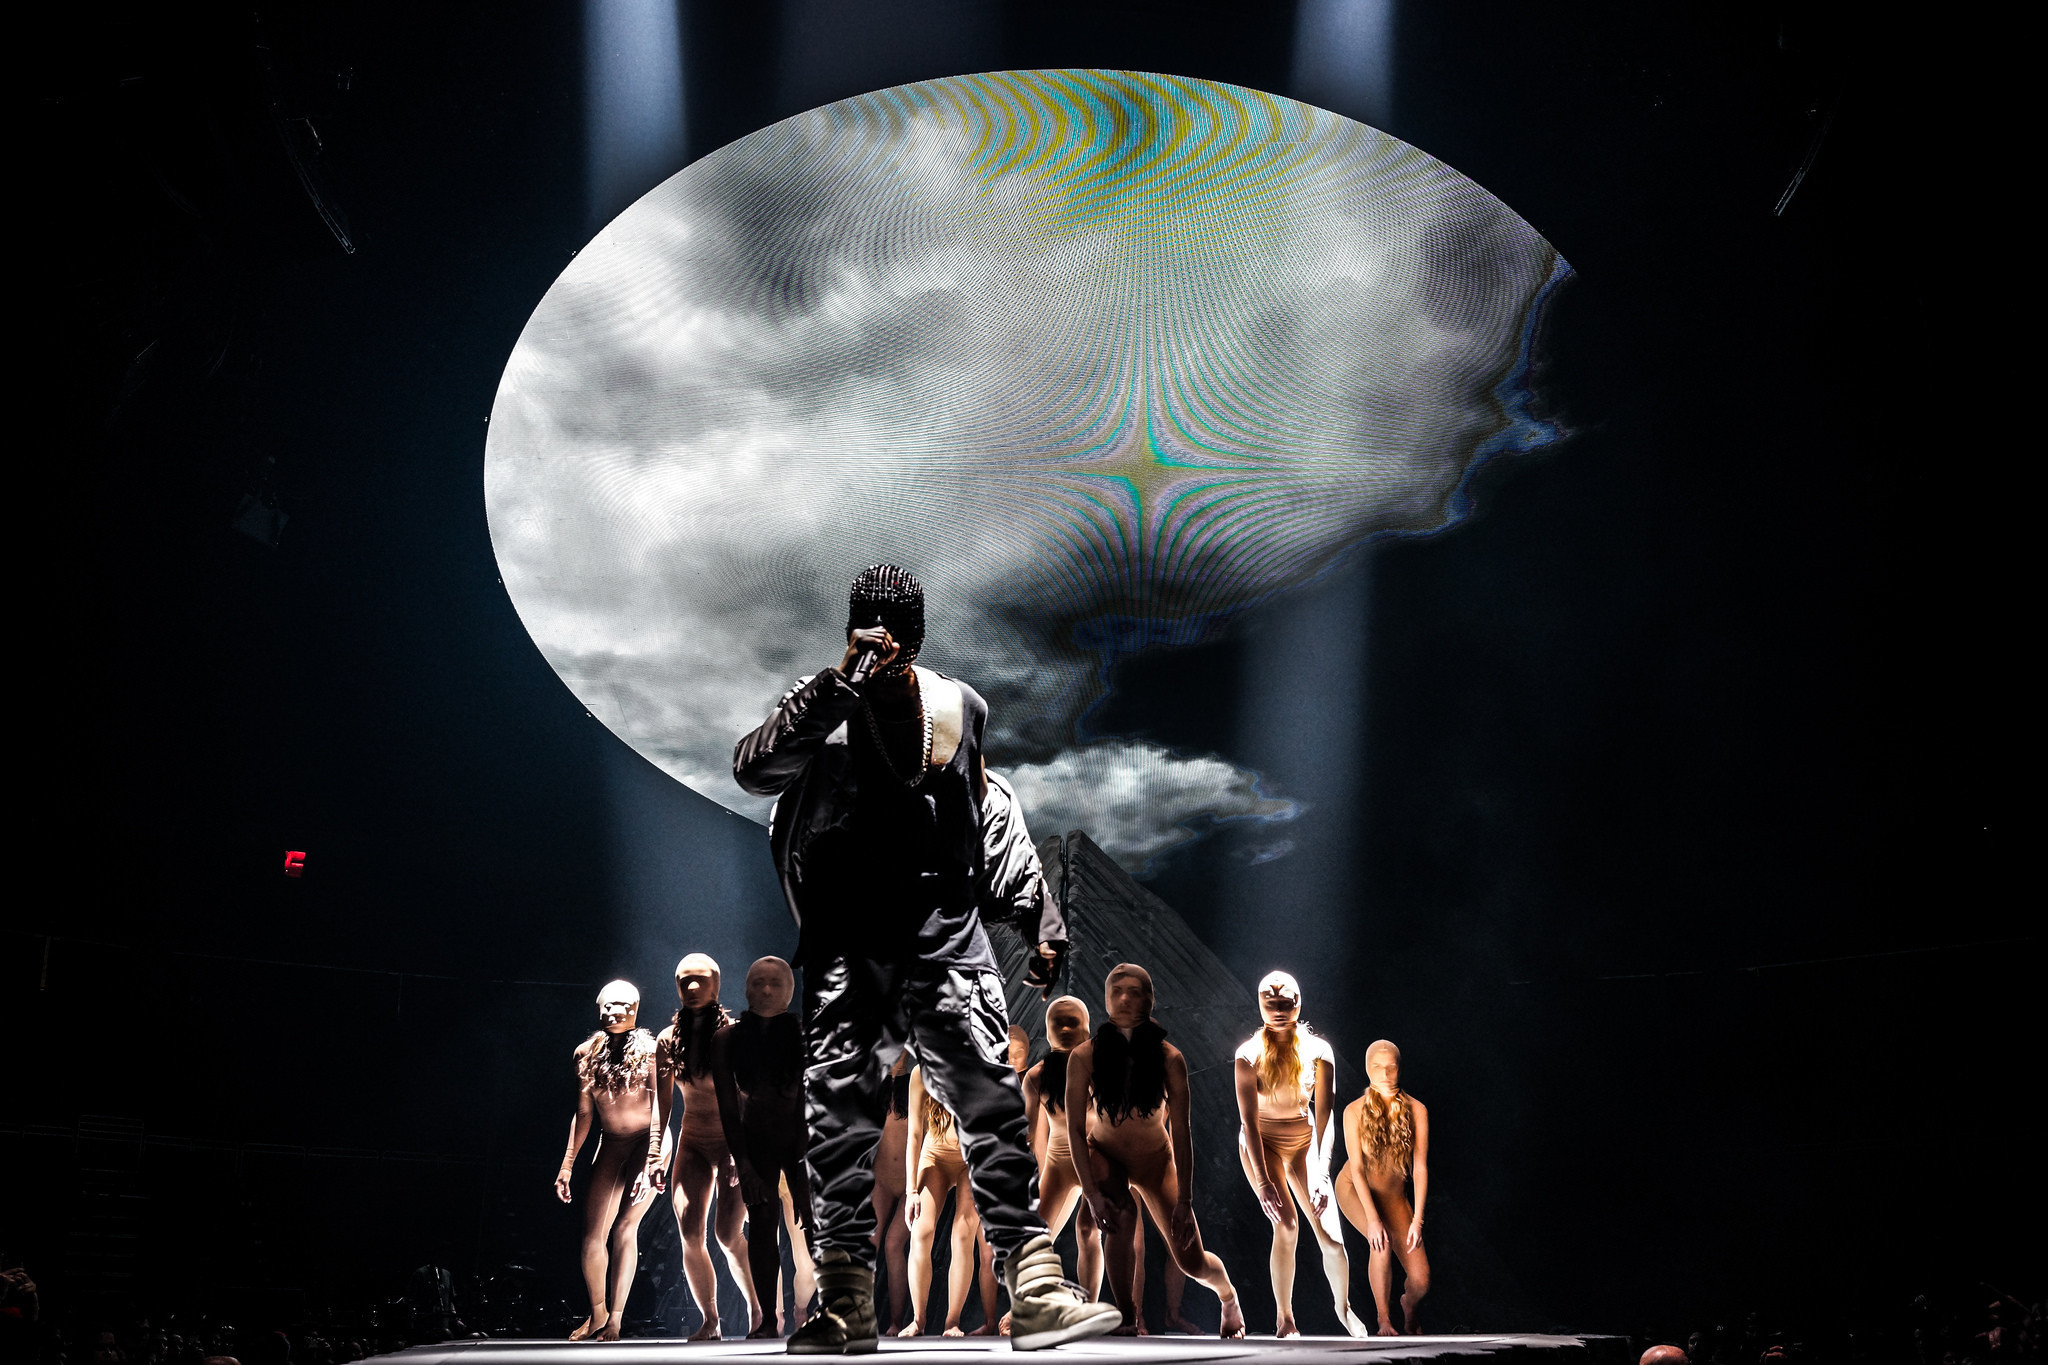 2048x1365 HD YEEZUS Tour Wallpapers (Desktop & Phone) [UPDATED!!] Â« Kanye